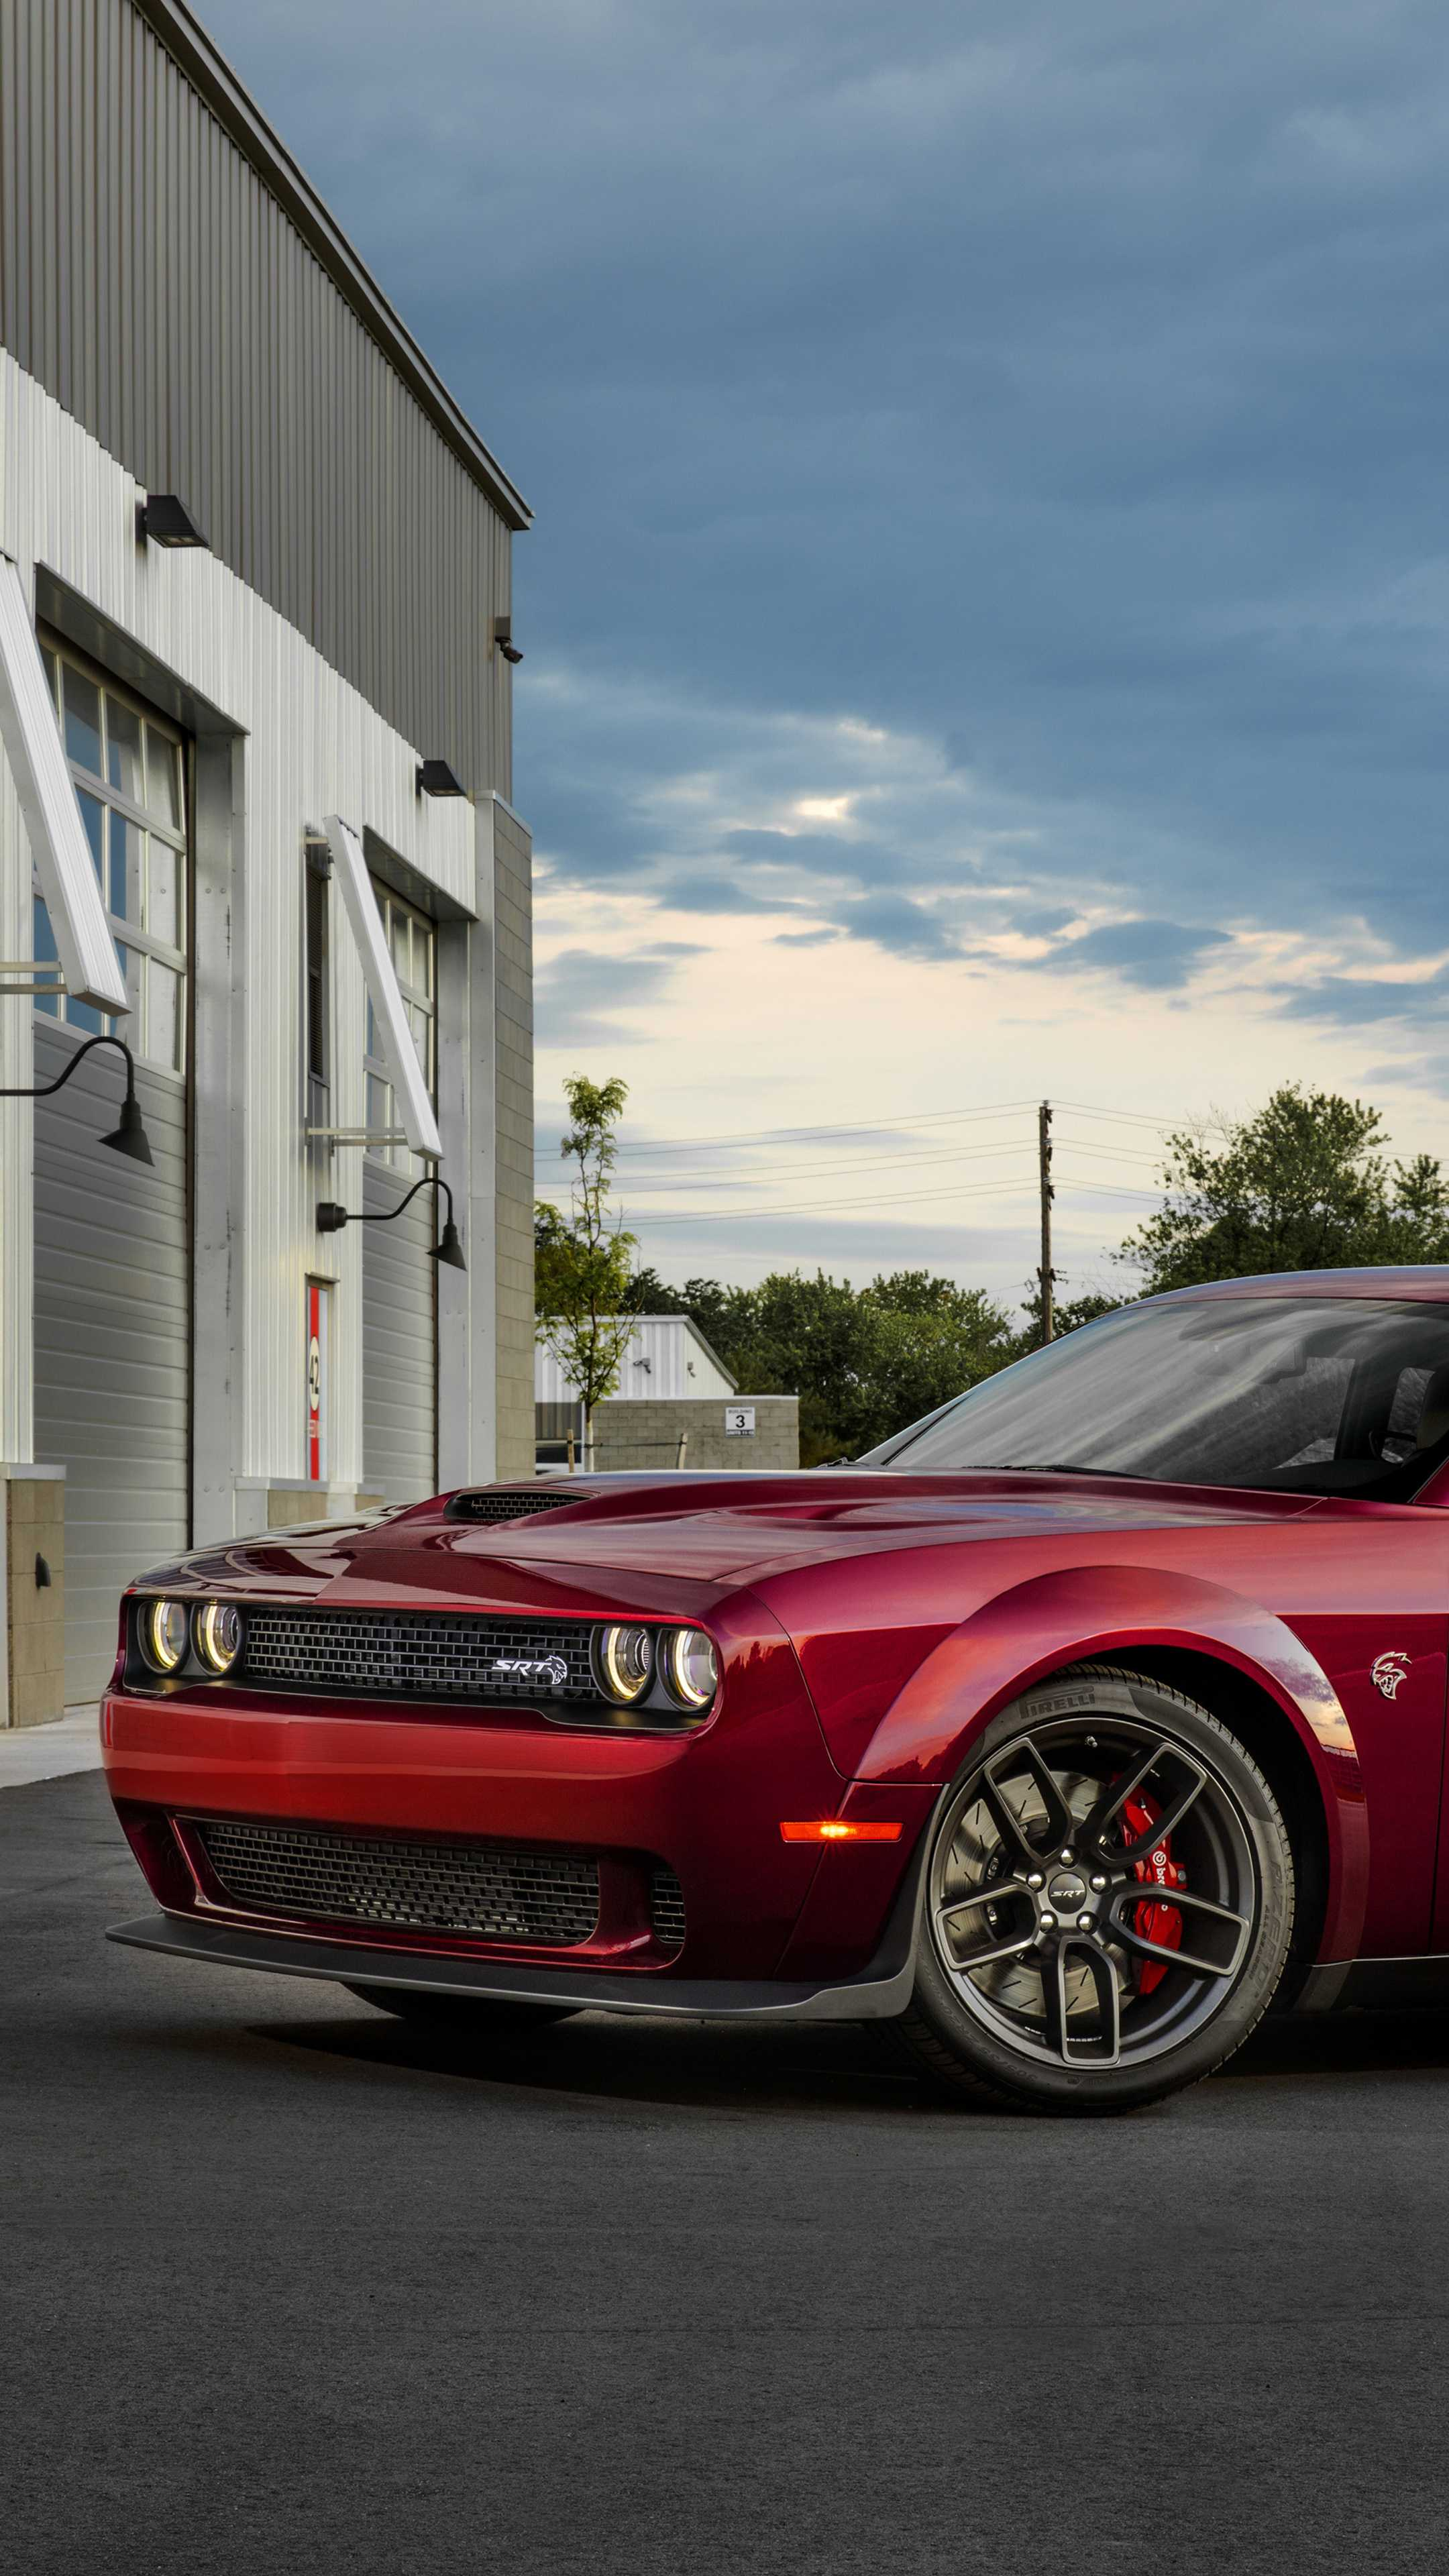 Iphone Dodge Challenger Demon Wallpaper Kolpaper Awesome Free Hd Wallpapers